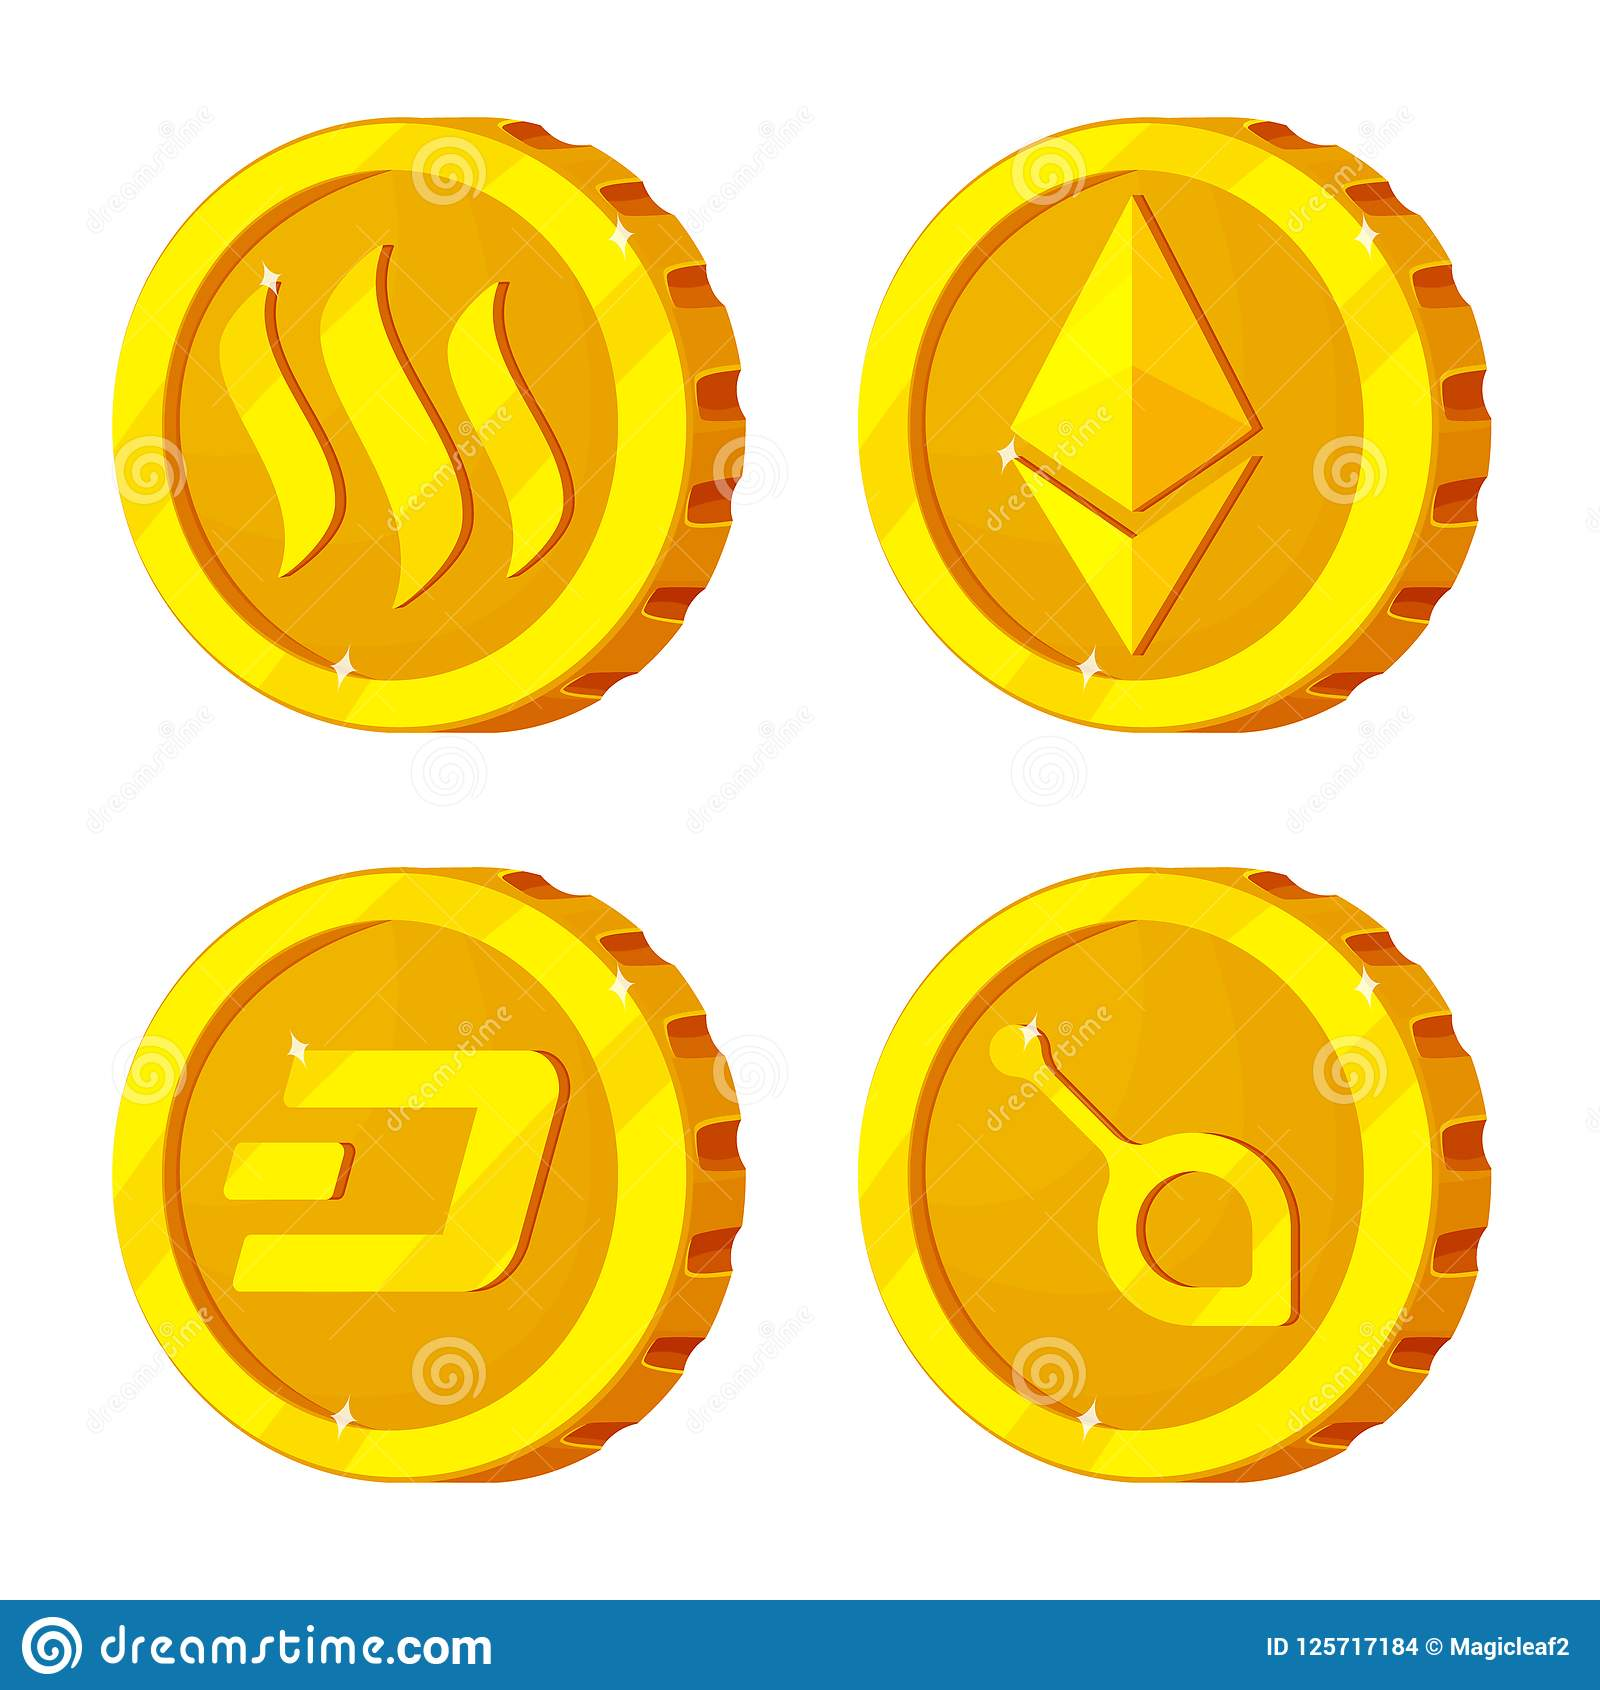 Vector Design Of Cryptocurrency And Coin Symbol Set Of